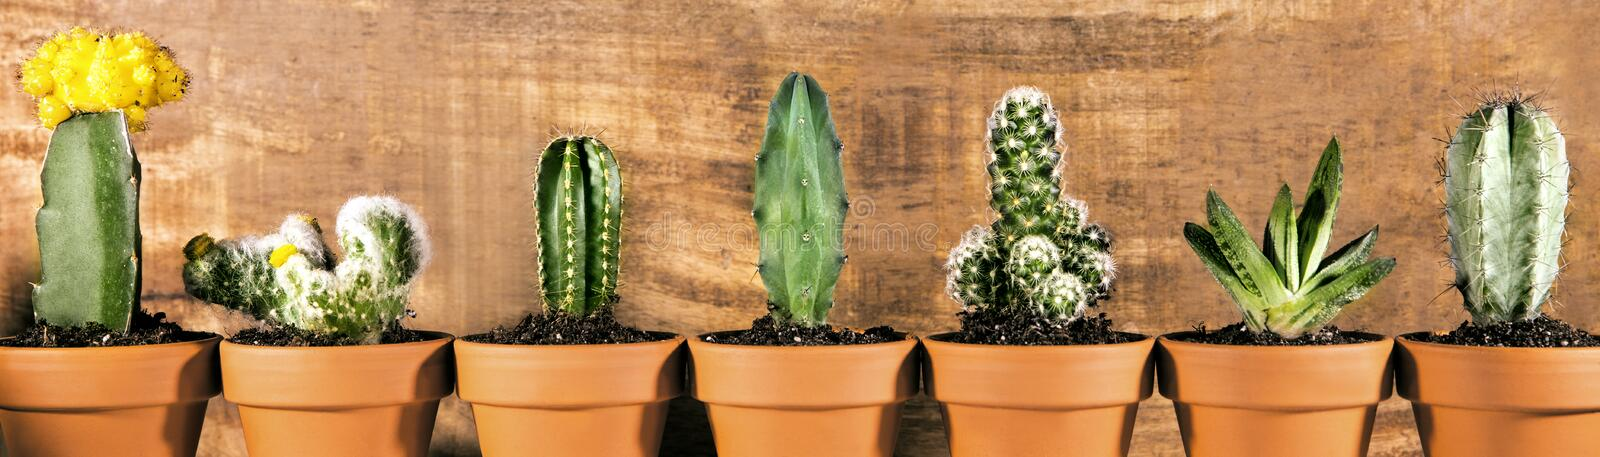 Panorama, different sorts of cactus plants in front of wooden background, potted royalty free stock images